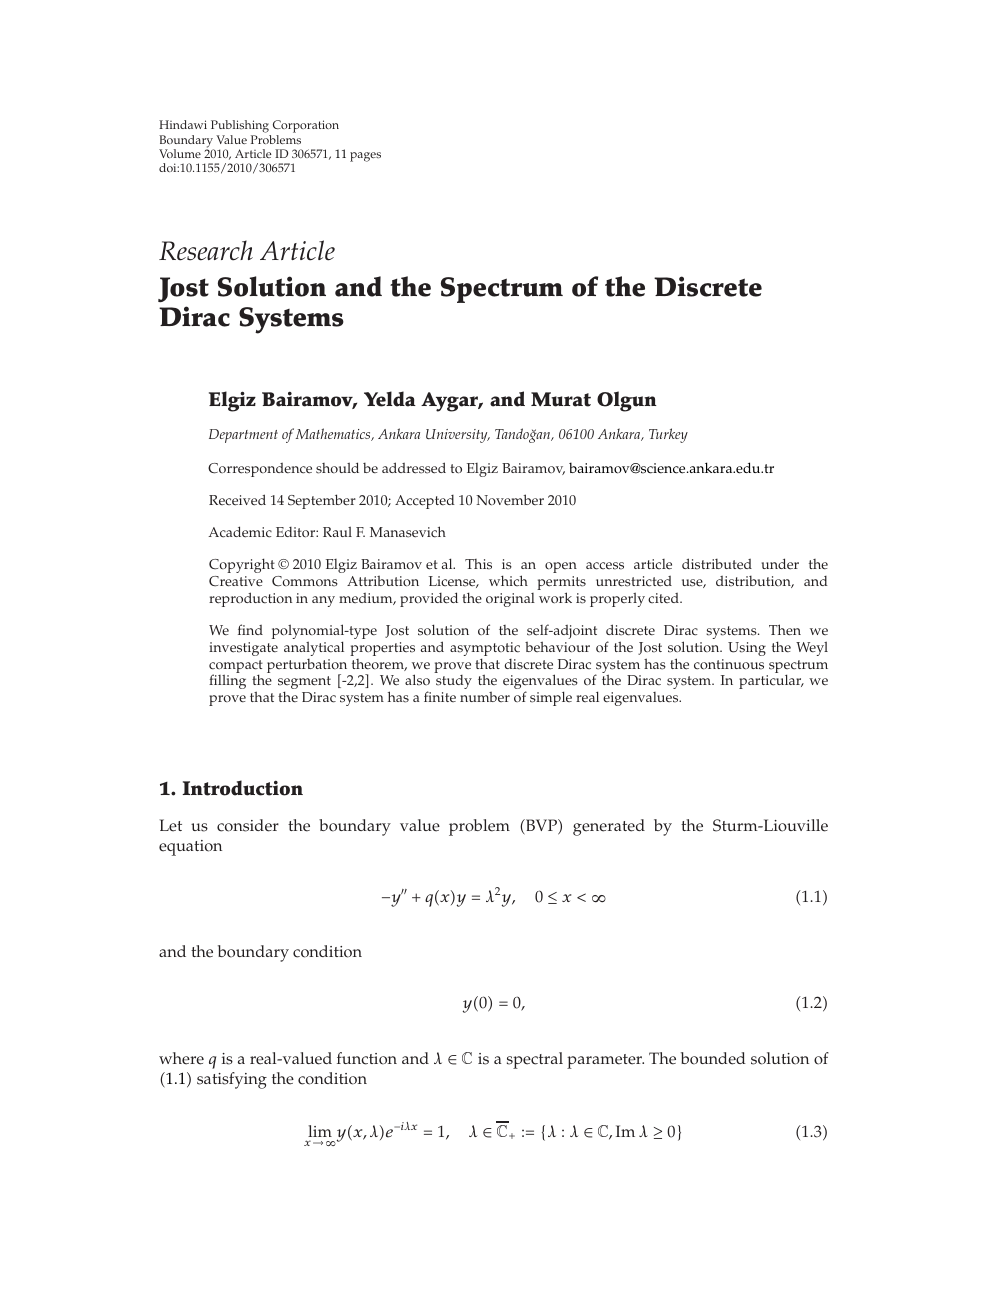 Direct Methods of Qualitative Spectral Analysis of Singular Differential Operators